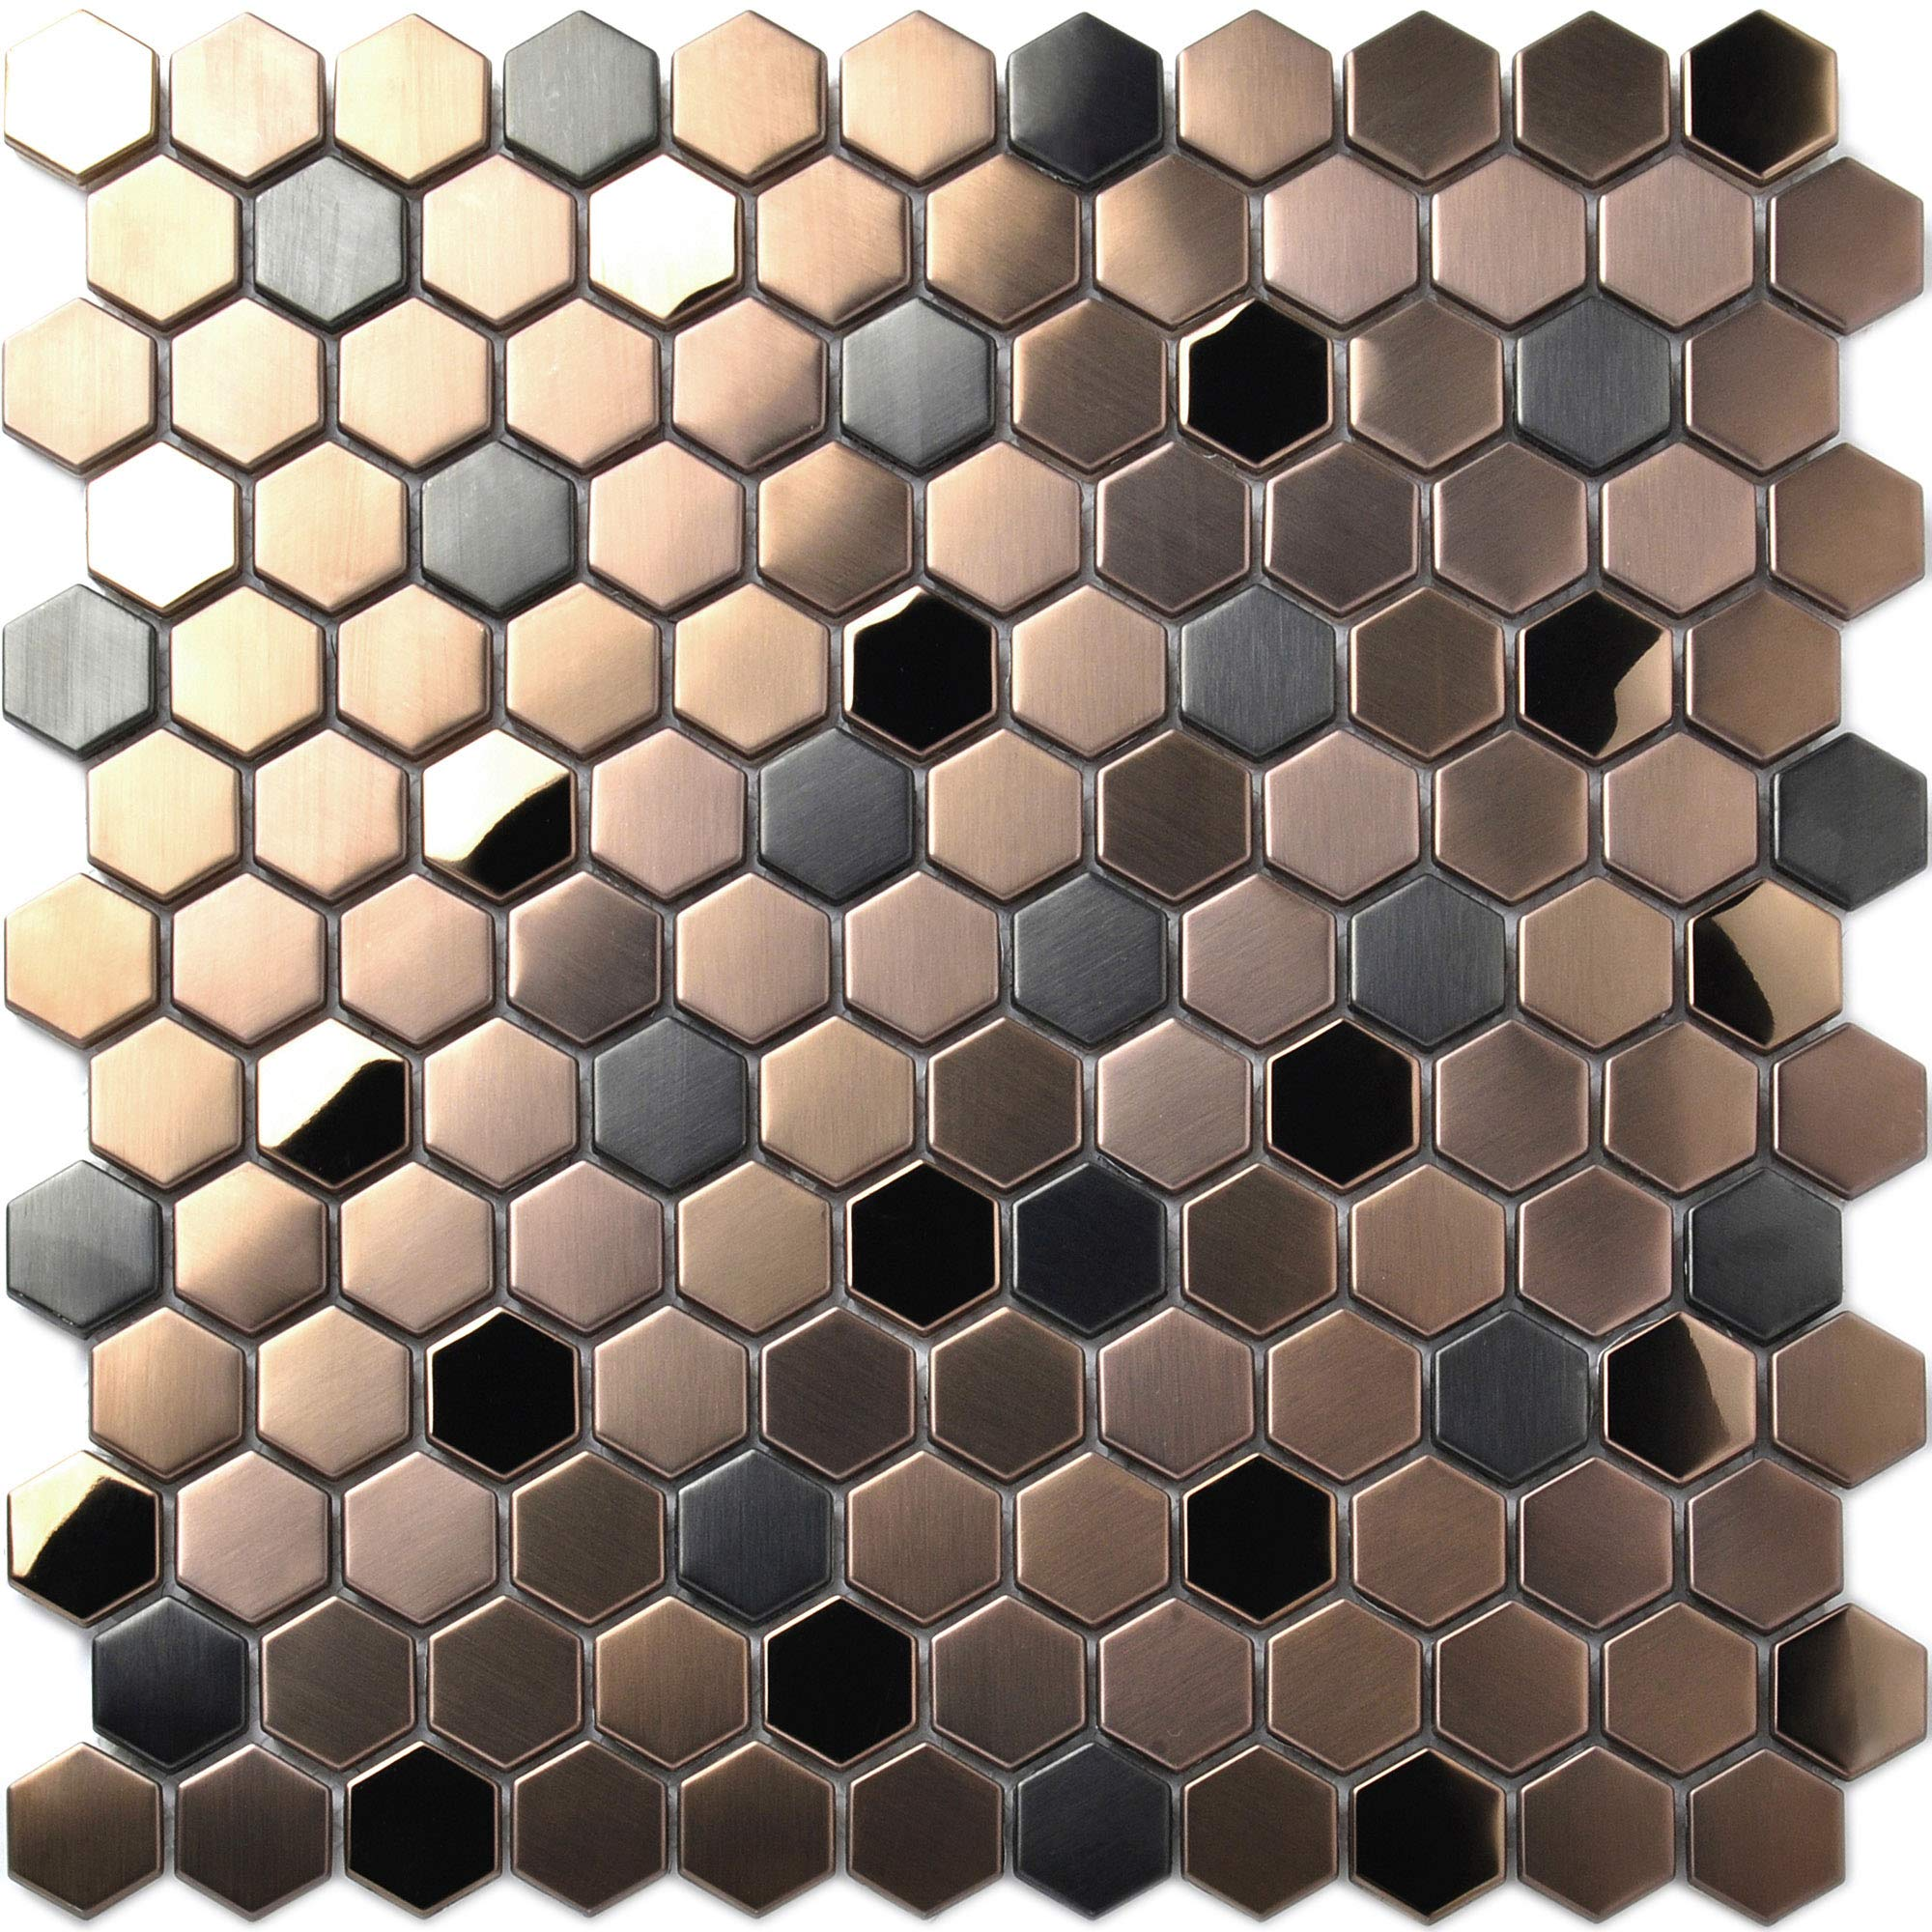 Hexagon Stainless Steel Brushed Mosaic Tile Bronze Copper Color Black Bathroom Shower Floor Tiles TSTMBT021 (1 Sample 12x12 Inches)